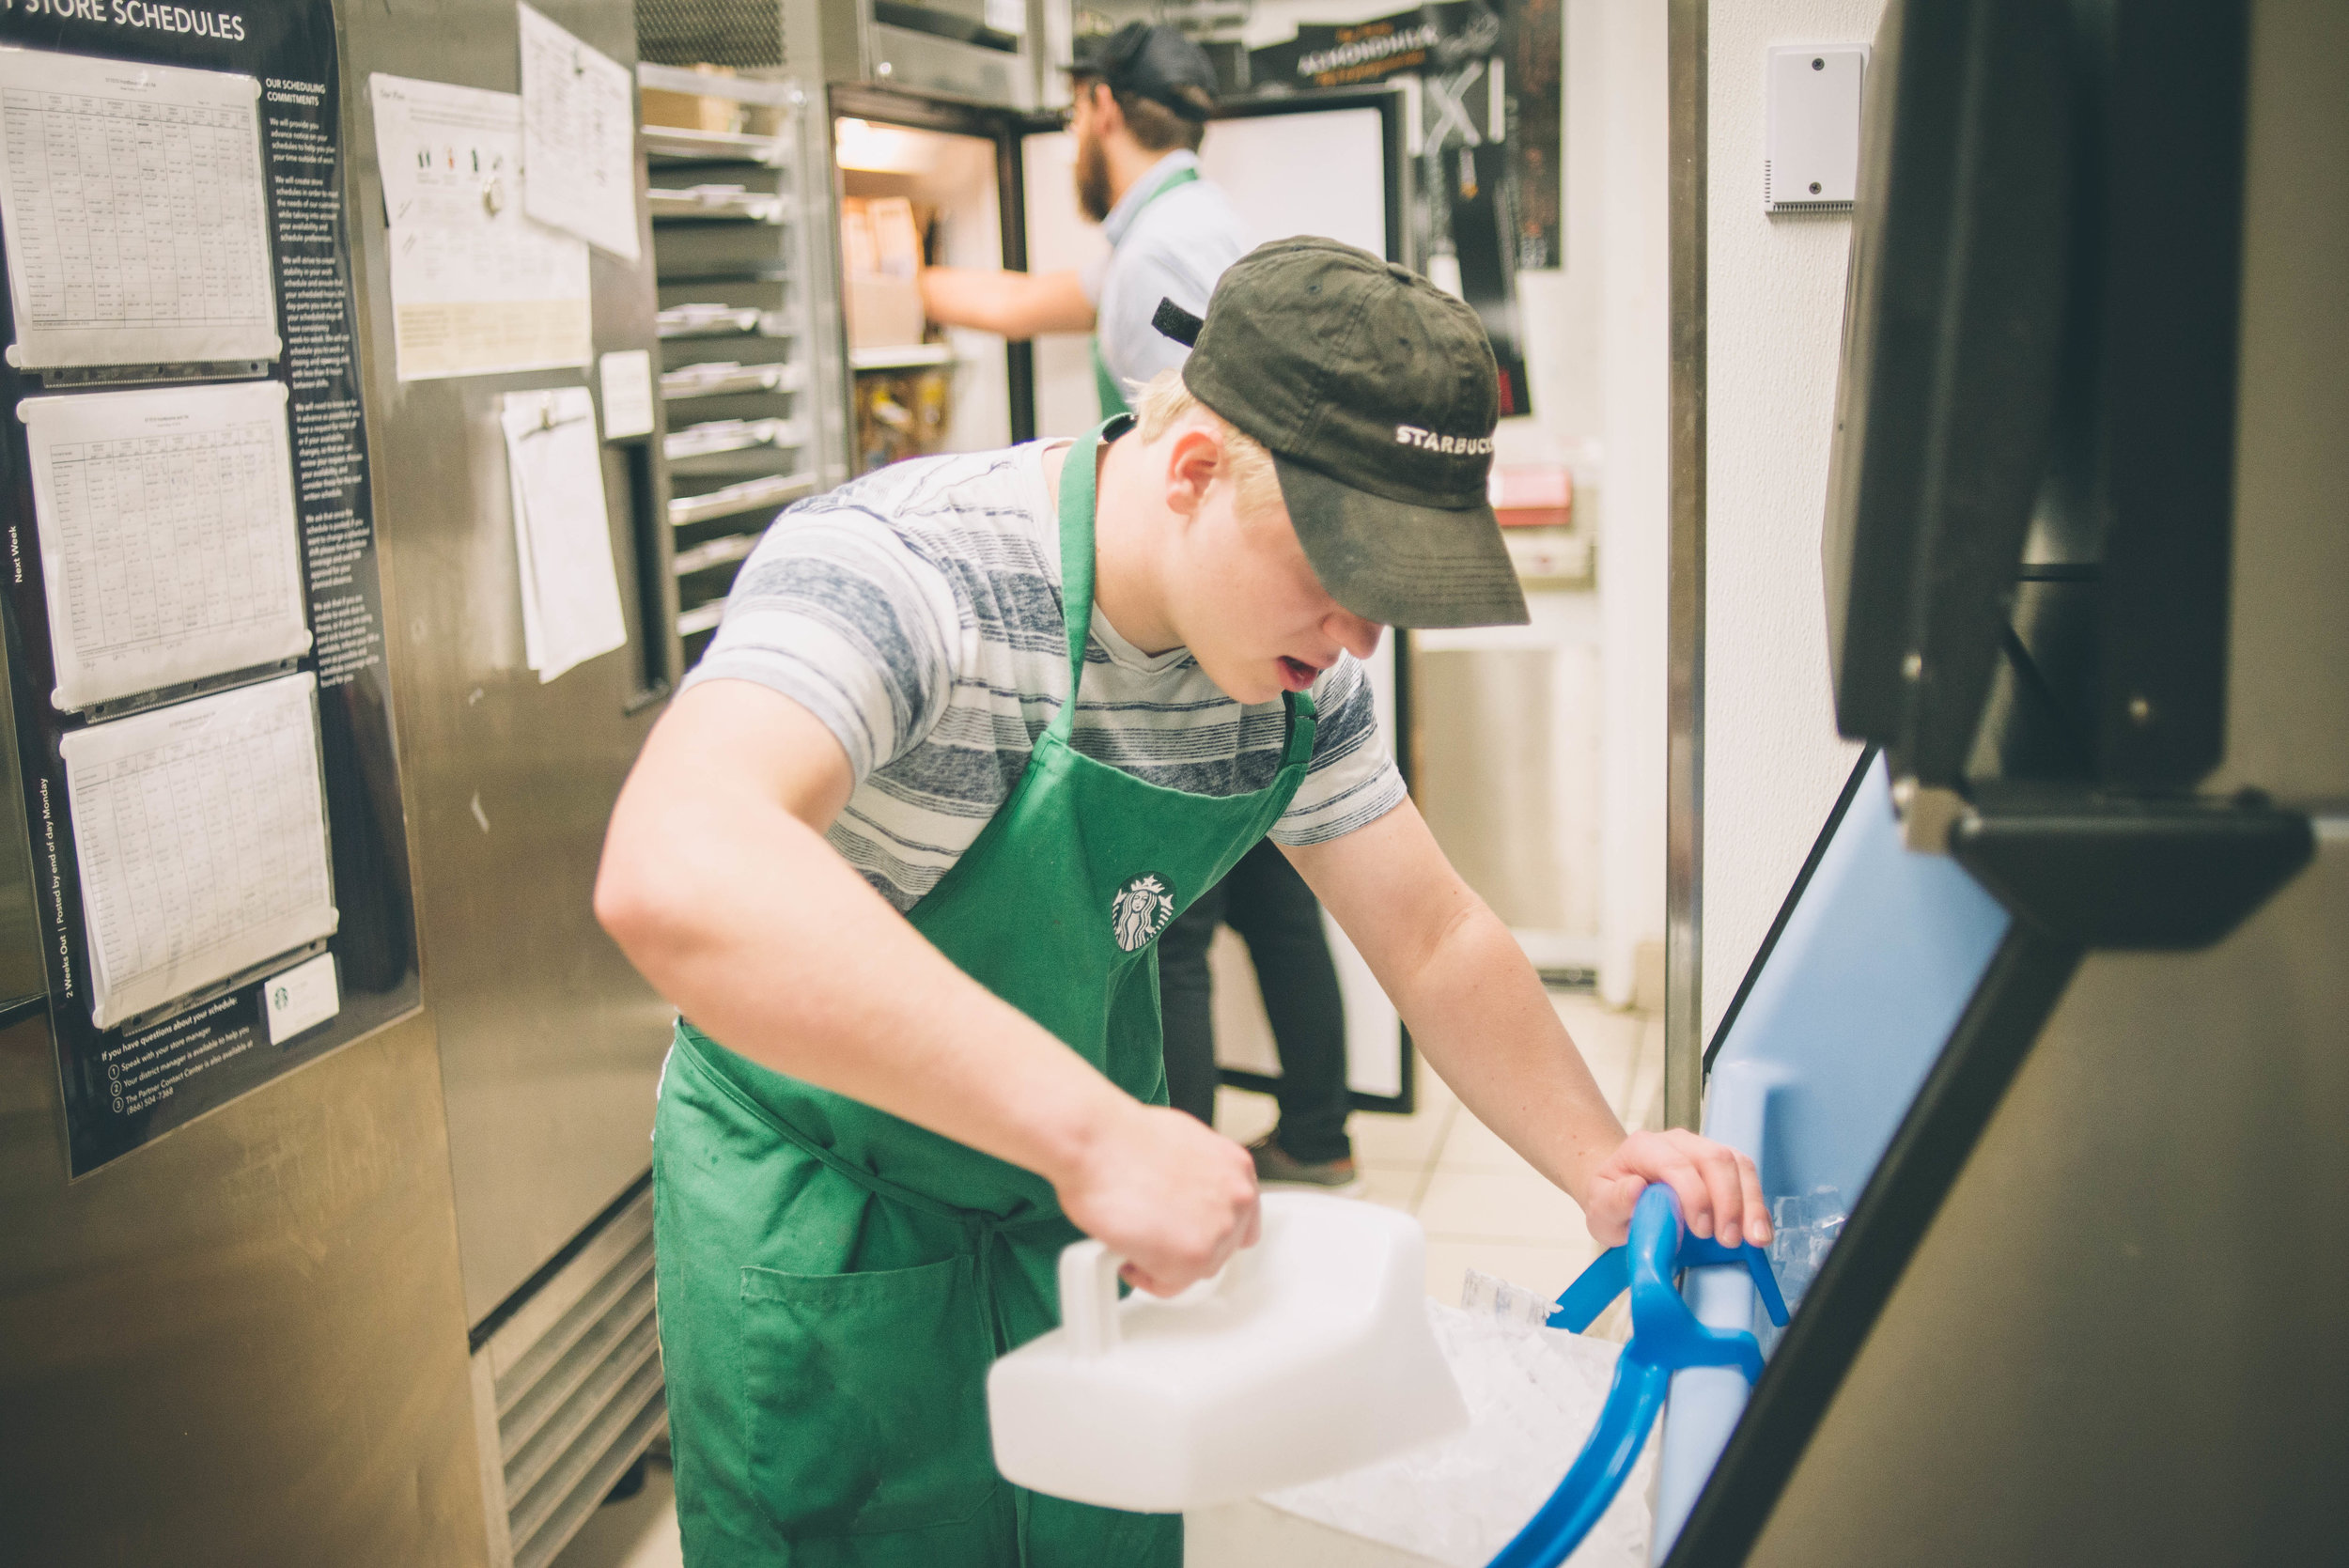 Image of an individual scooping ice out of a ice refrigerator. They are wearing a Starbucks apron and hat with a striped t-shirt. They are in a kitchen area.